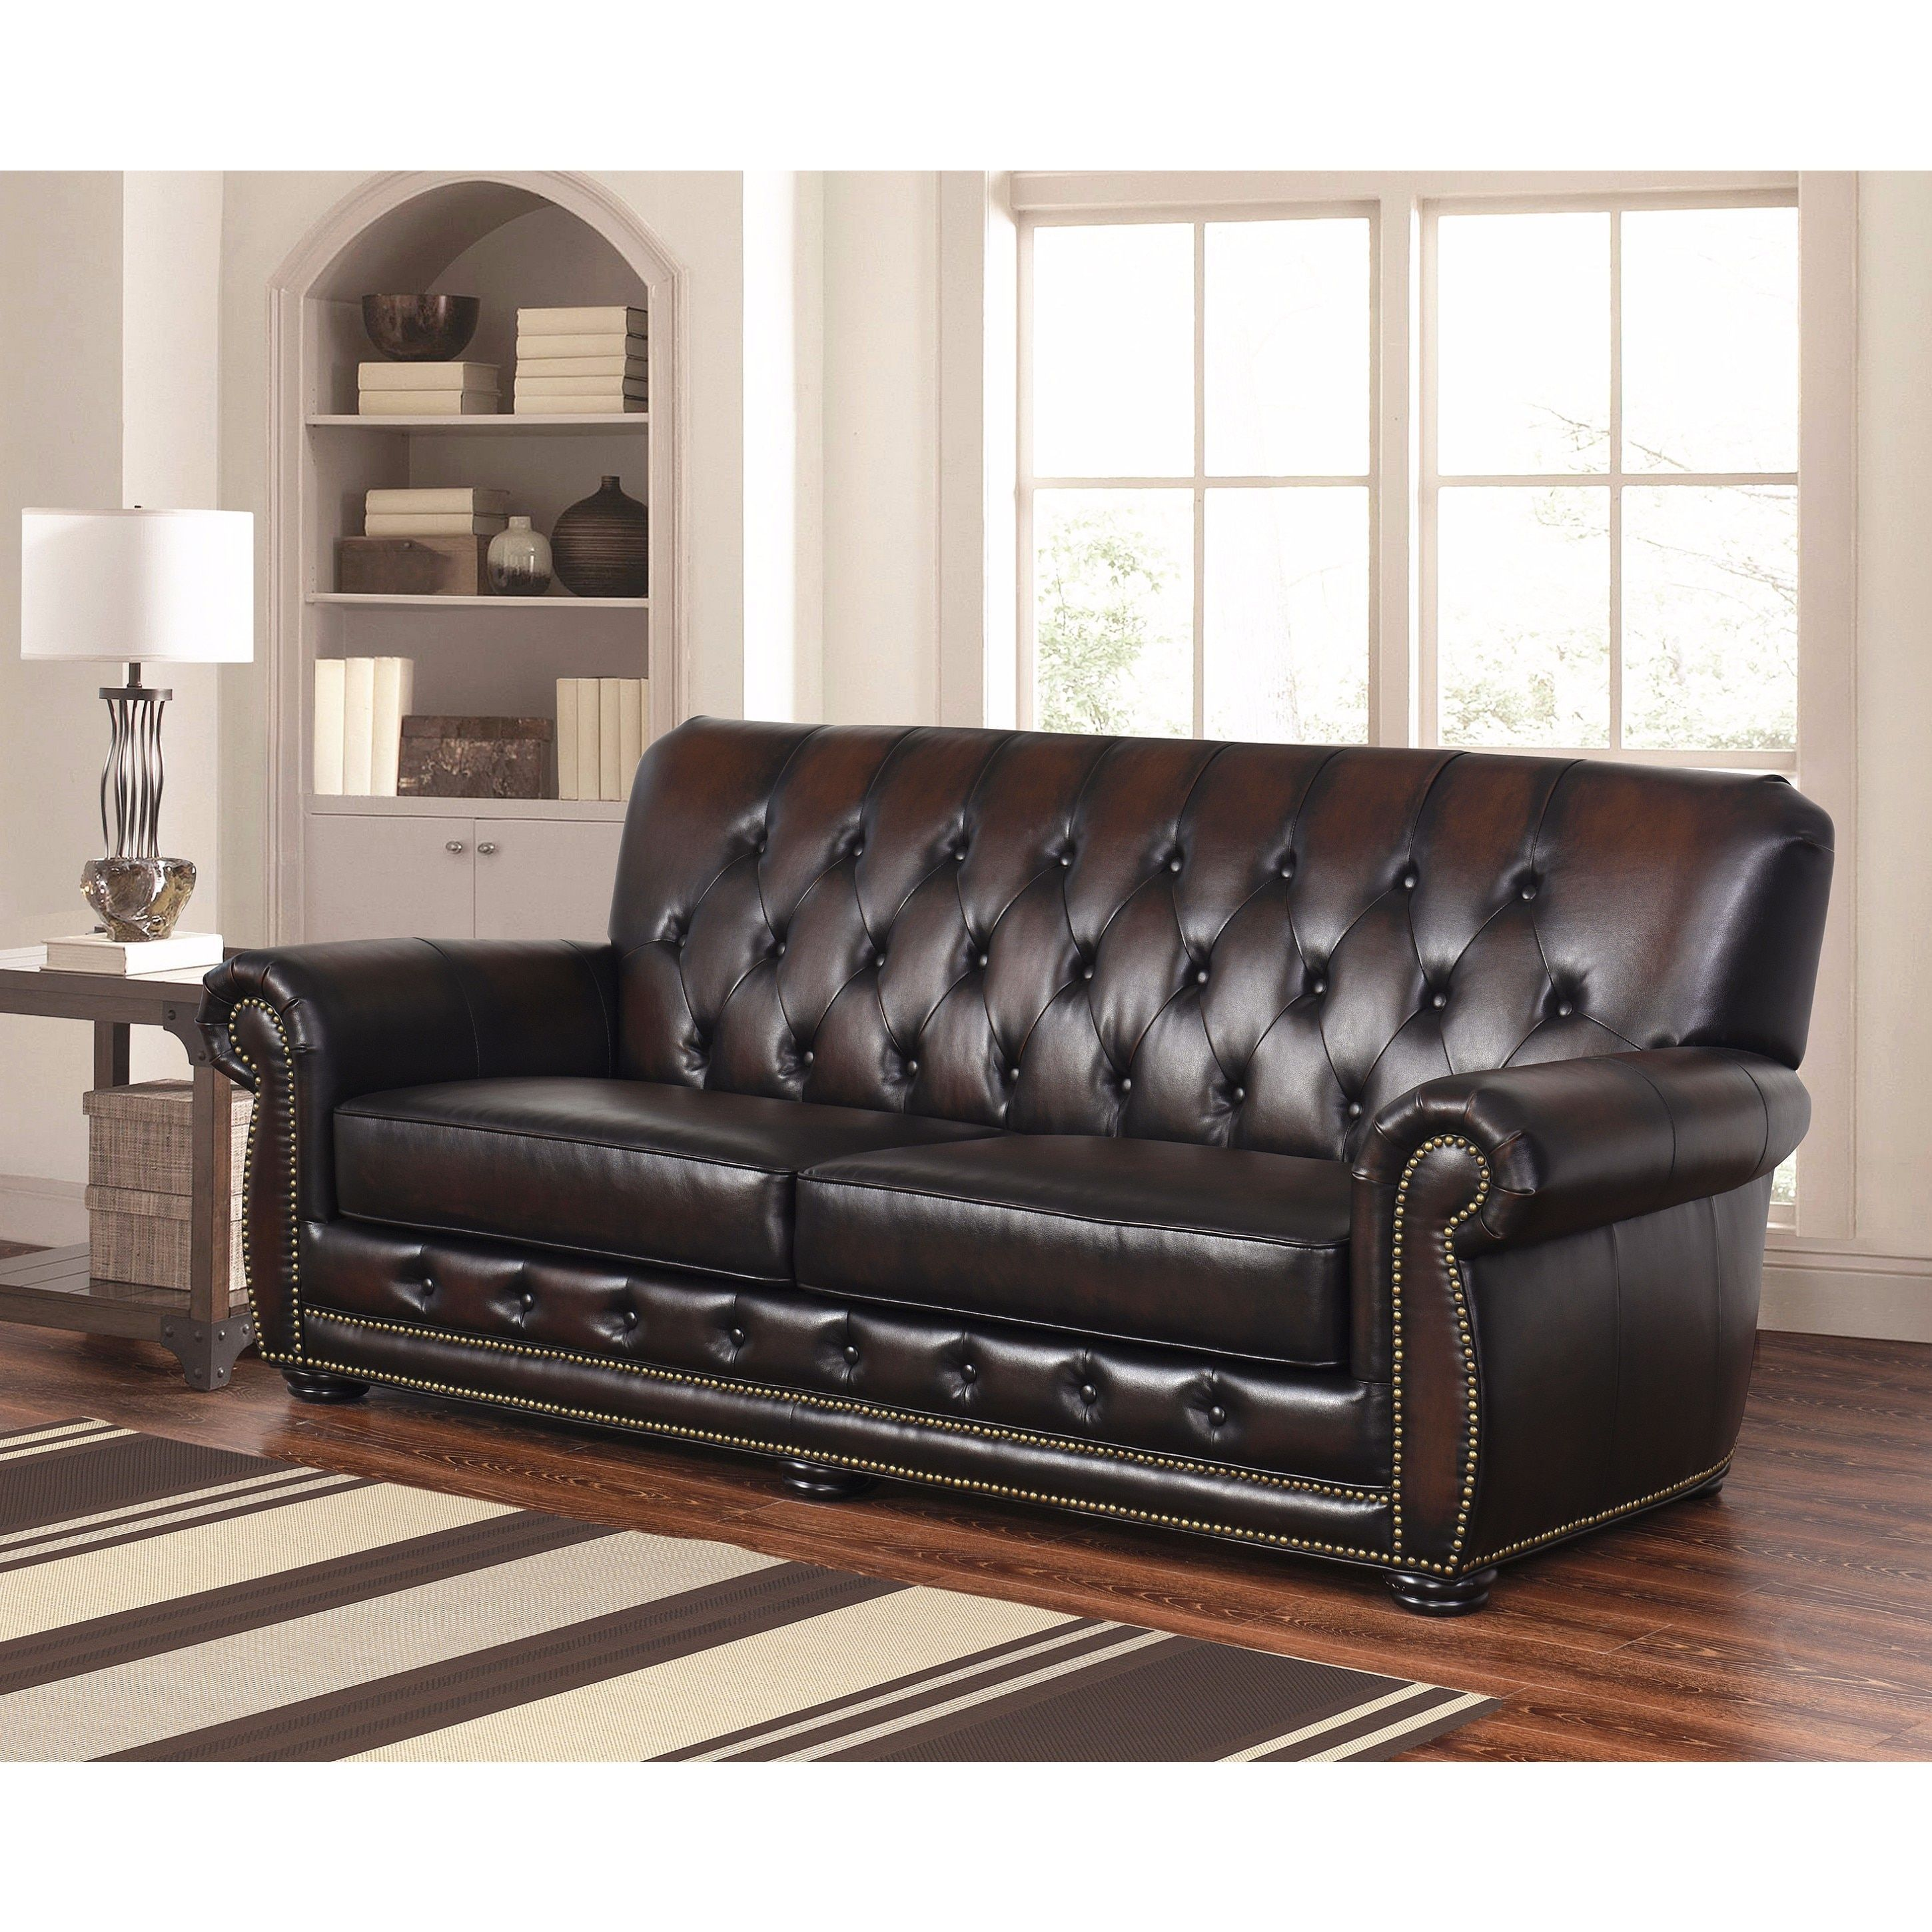 Peachy Abbyson Sonoma Tufted Leather Sofa Sonoma Brown Bonded Ncnpc Chair Design For Home Ncnpcorg